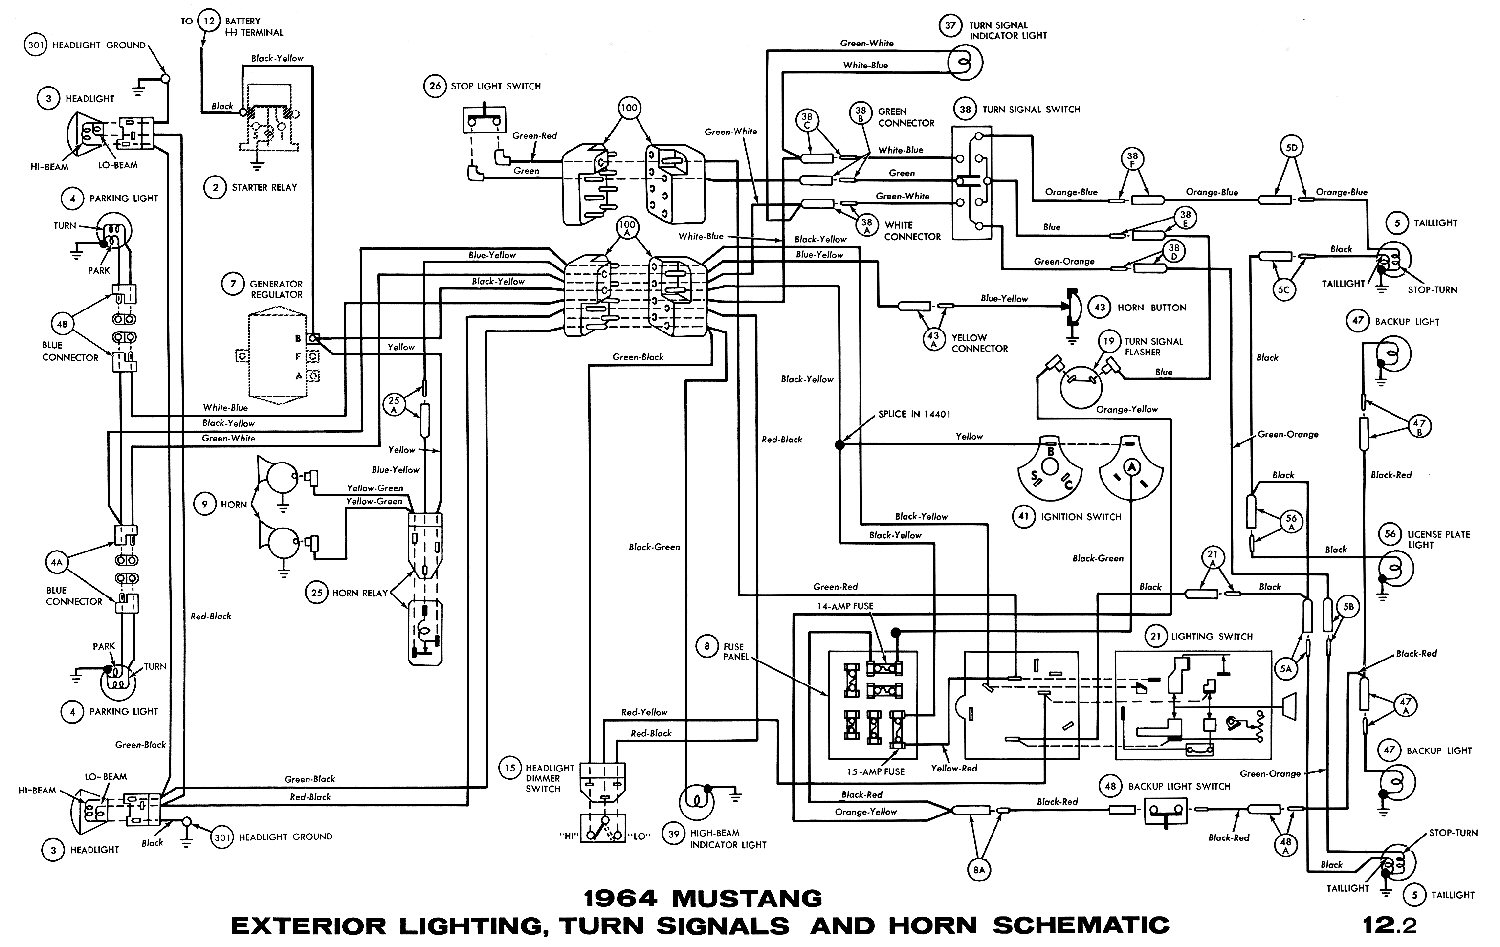 1964i 1964 mustang wiring diagrams average joe restoration 1969 mustang wiring harness diagram at alyssarenee.co